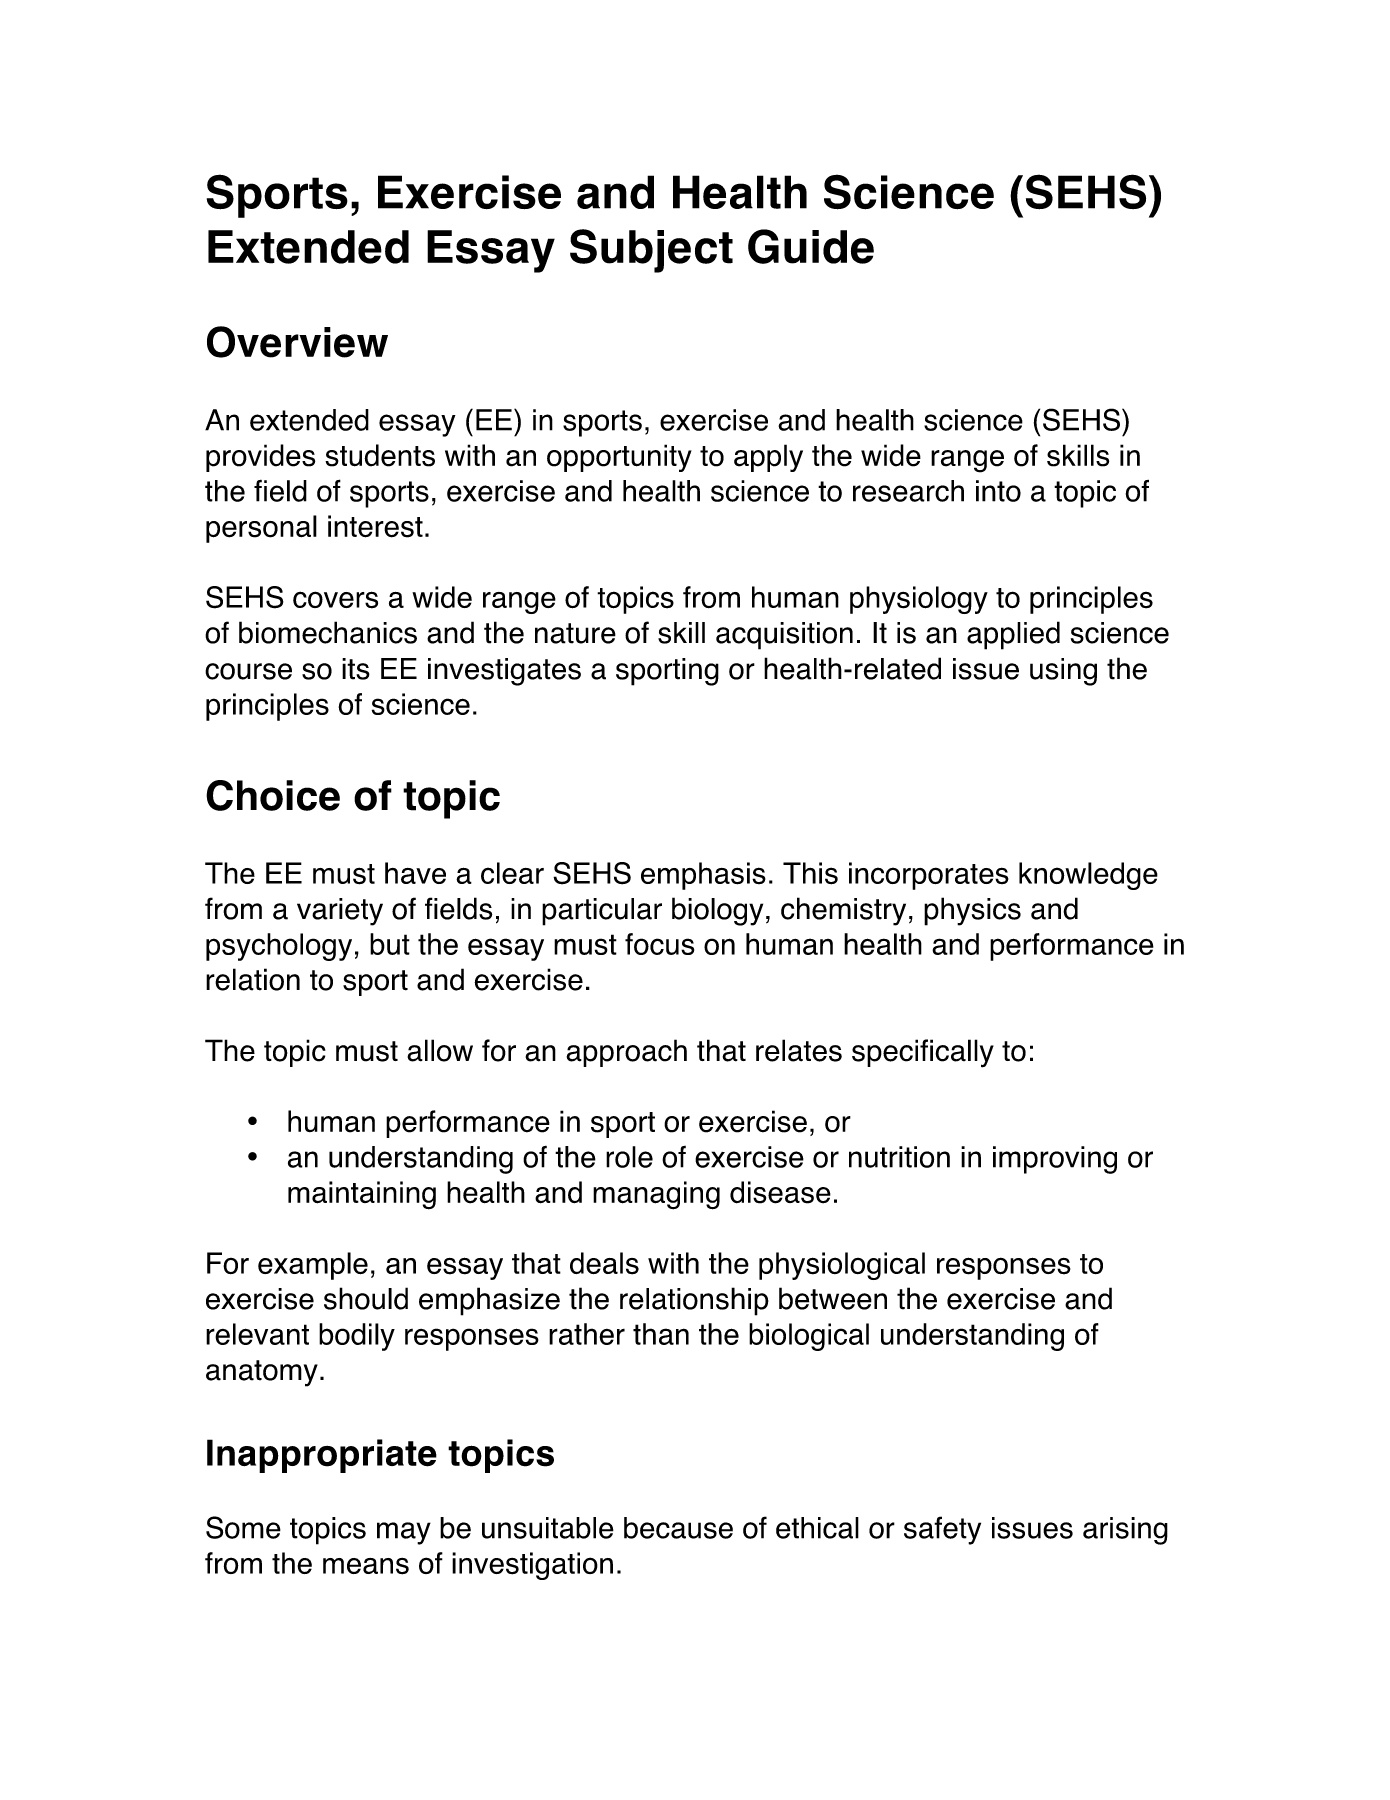 Personal interest in extended essay